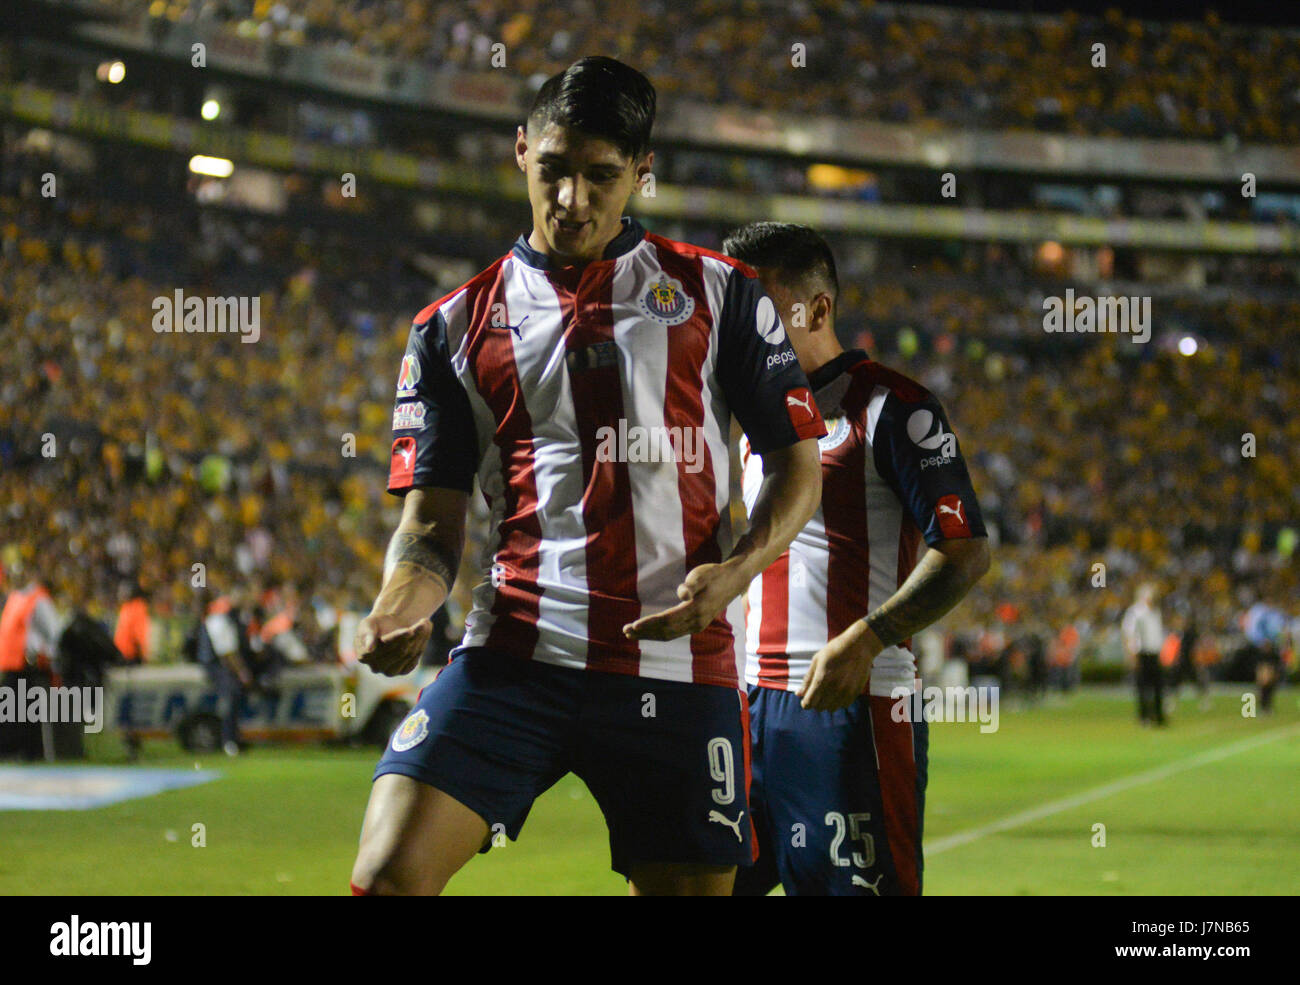 aa3bf0781f3 Chivas of Guadalajara player Alan Pulido celebrates after scoring a goal  against Tigres during the match for the first leg of the Clausura 2017  Tournament